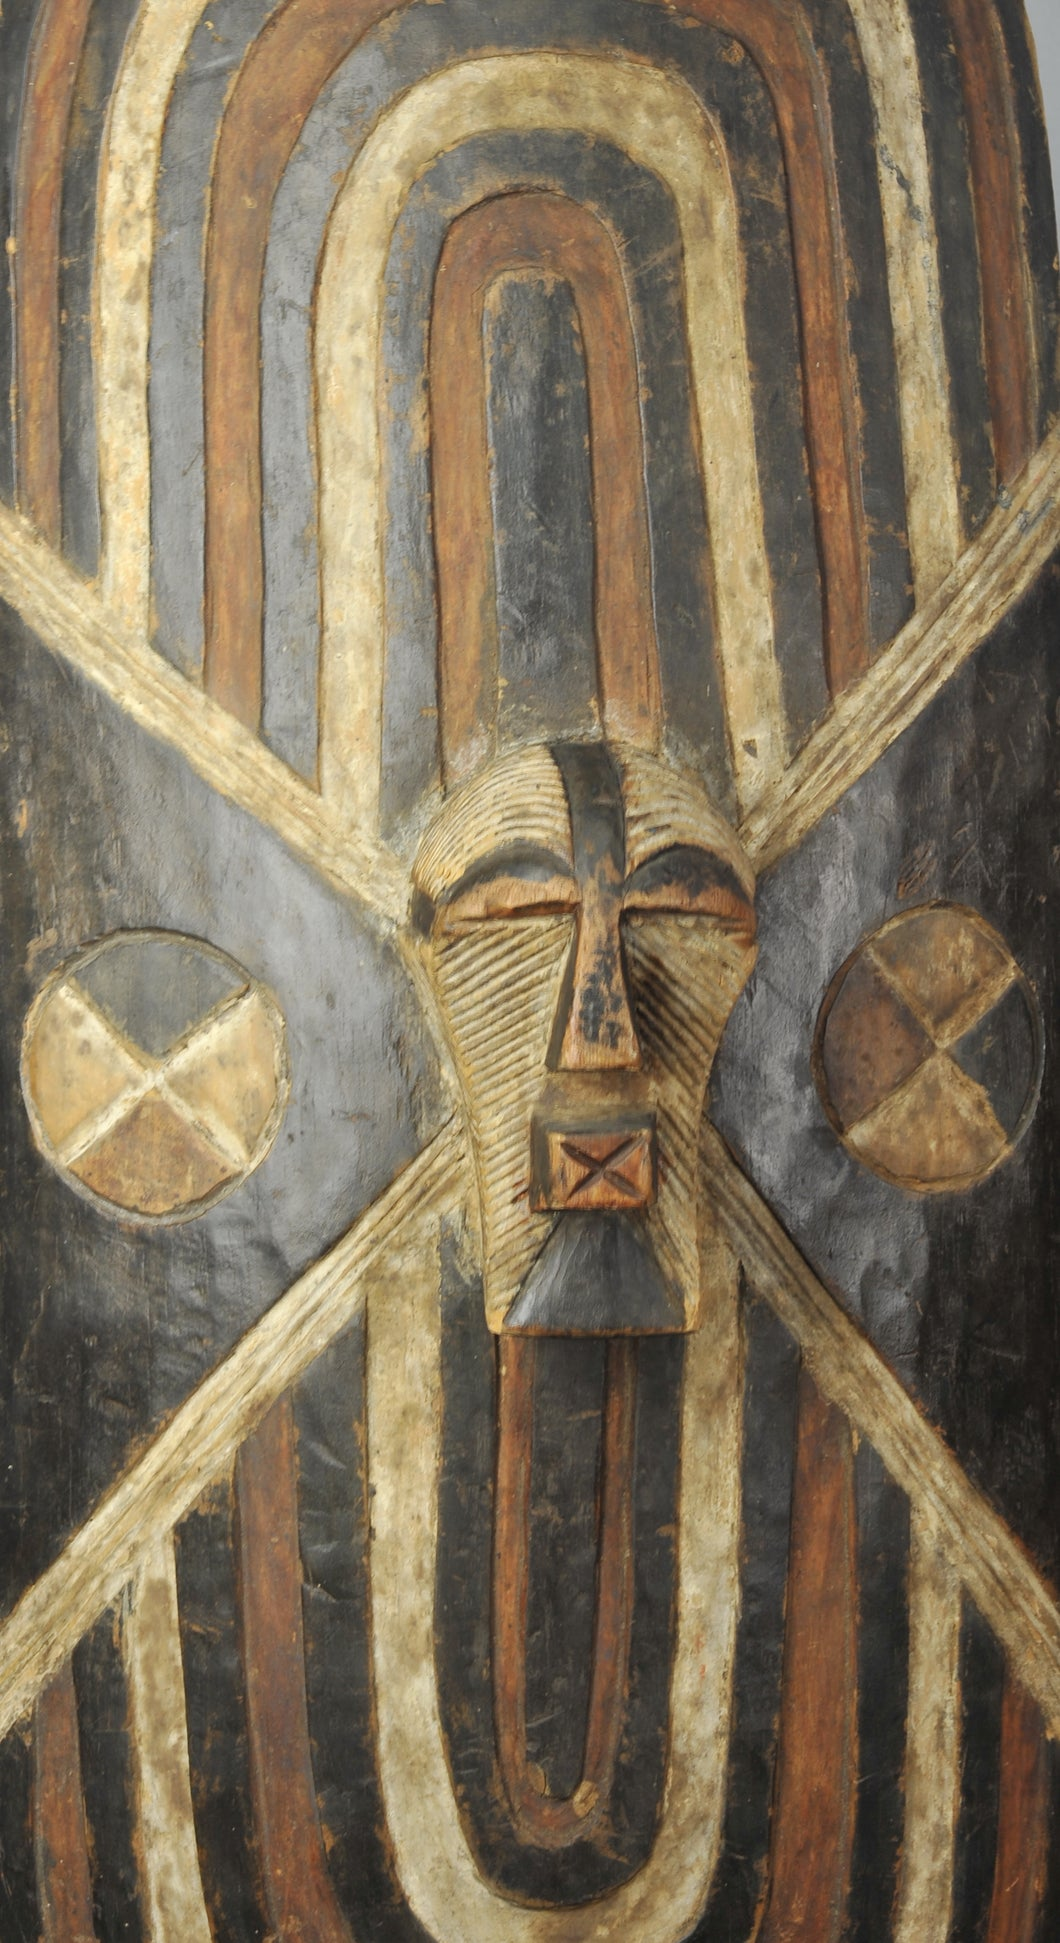 Superbe grand bouclier Songye Congo Basongye Songe Shield Art Africain Tribal